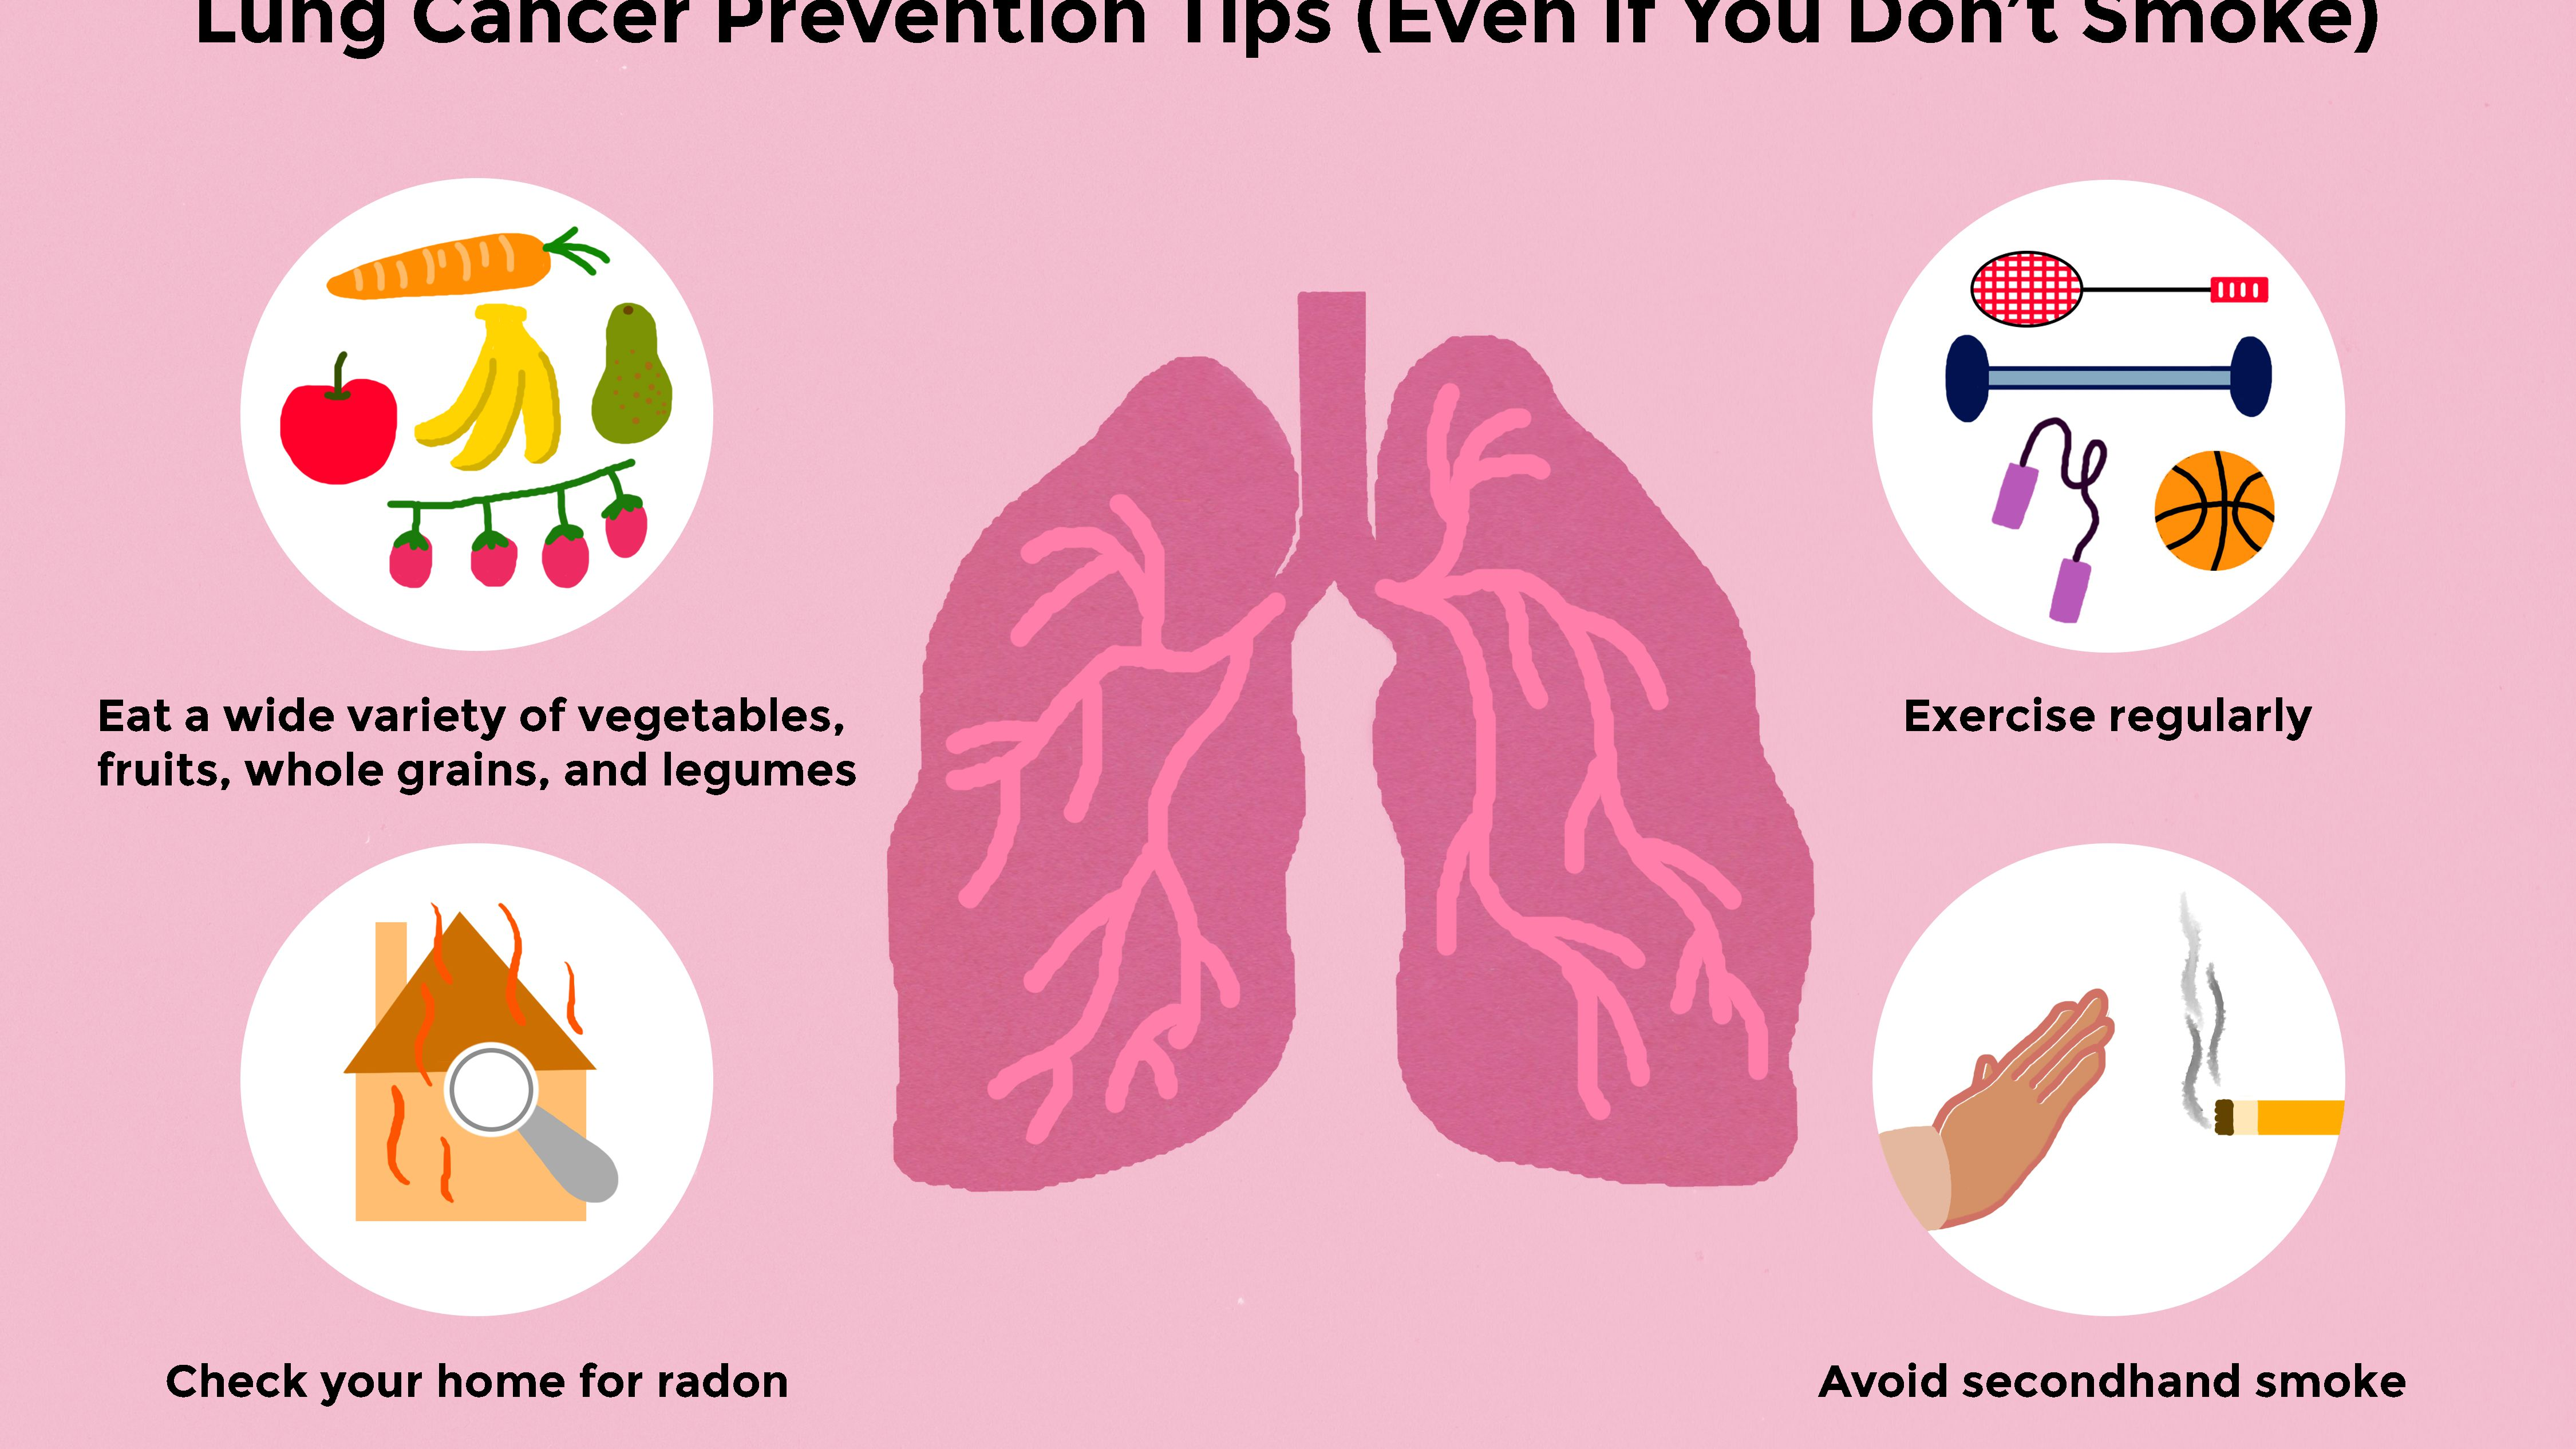 hpv and lung cancer connection